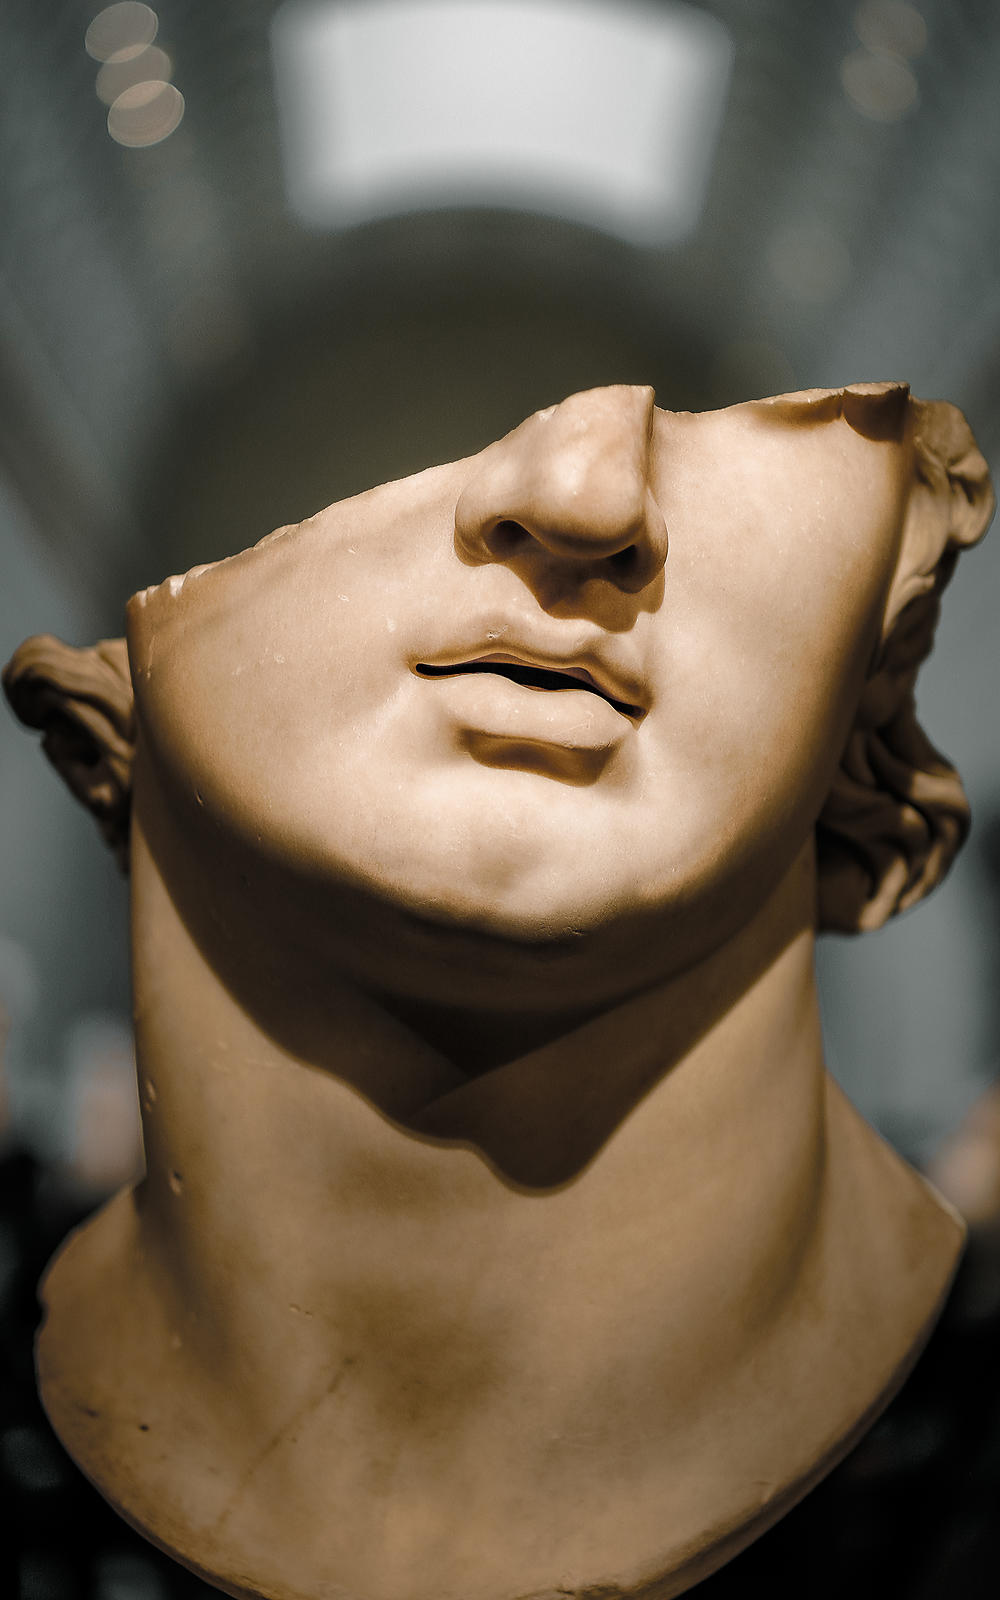 Head in Metropolitan Museum, New York